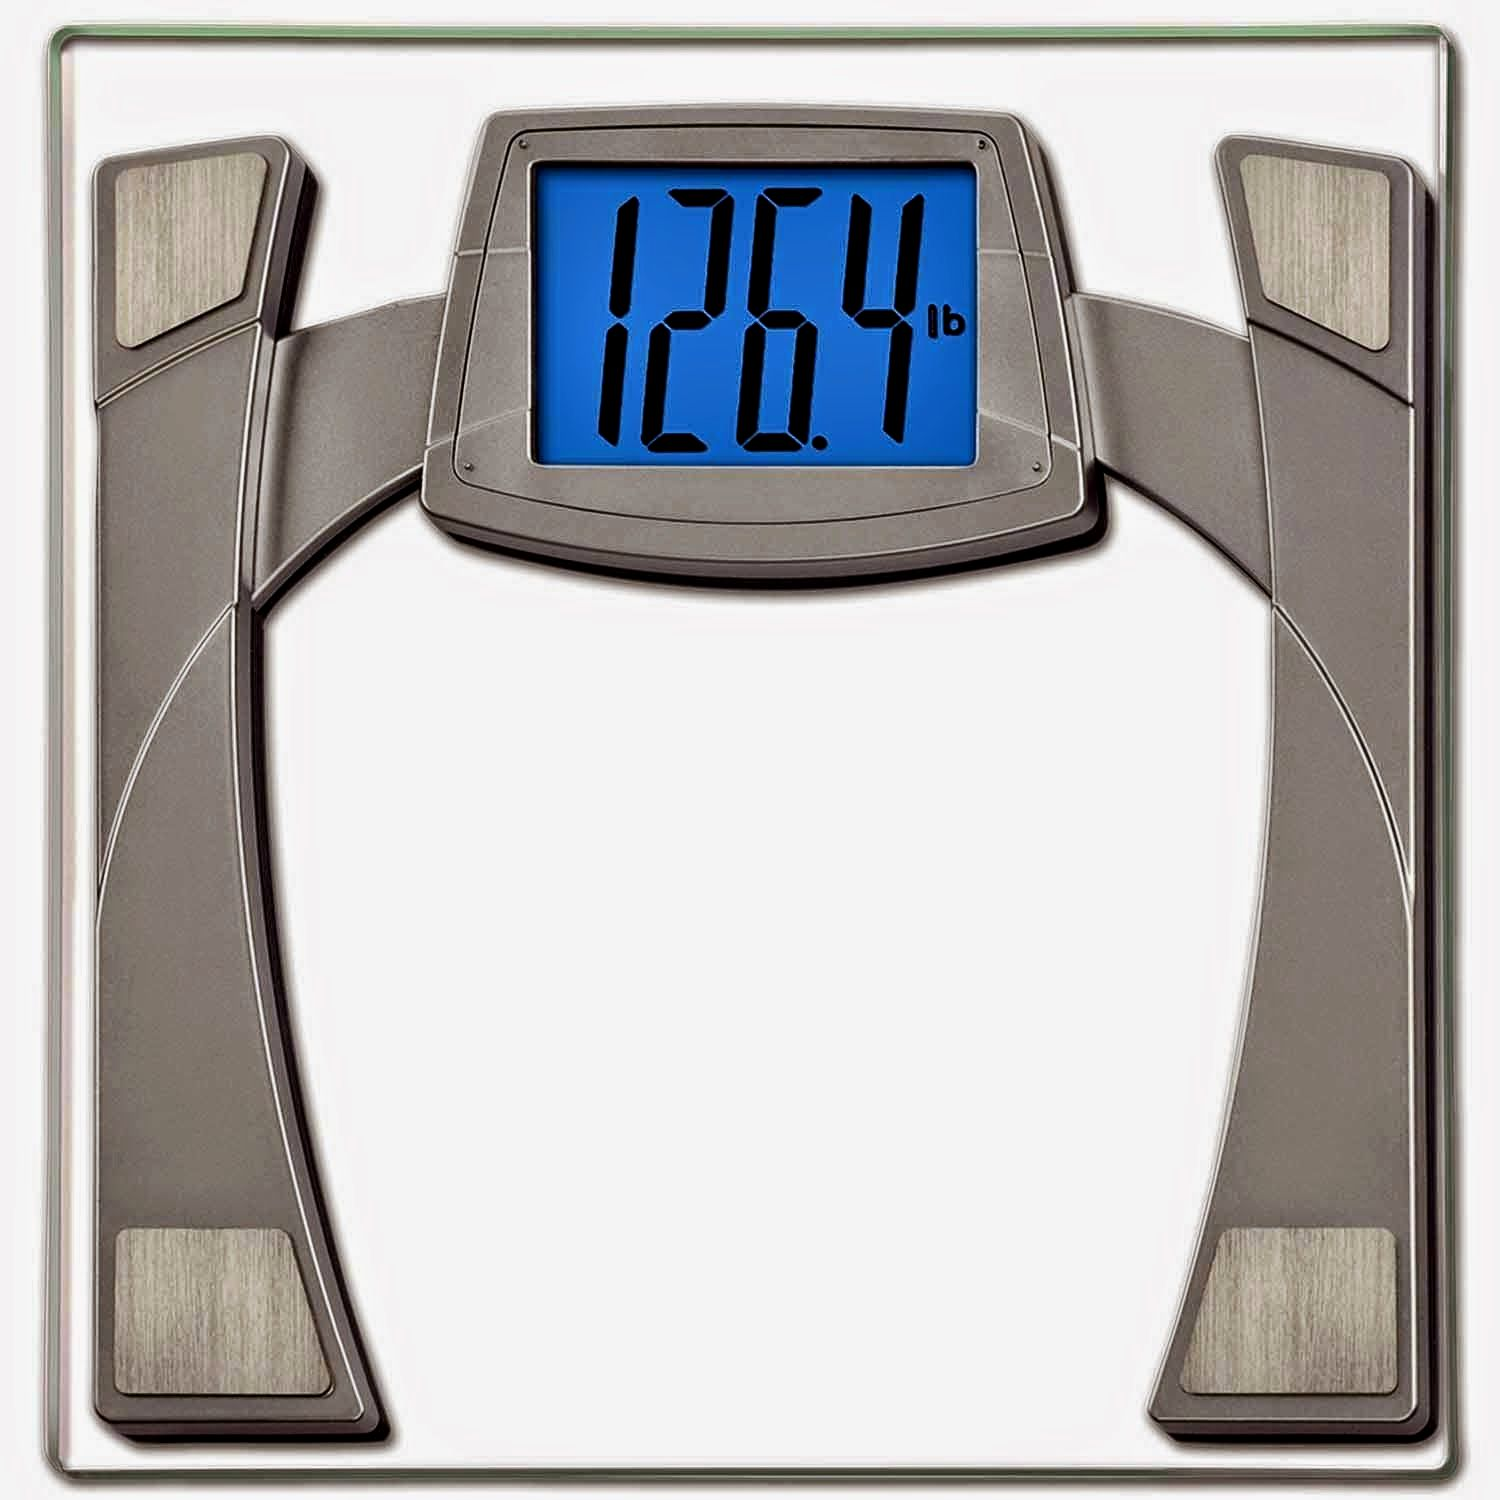 finest digital bathroom scale concept-Fantastic Digital Bathroom Scale Wallpaper